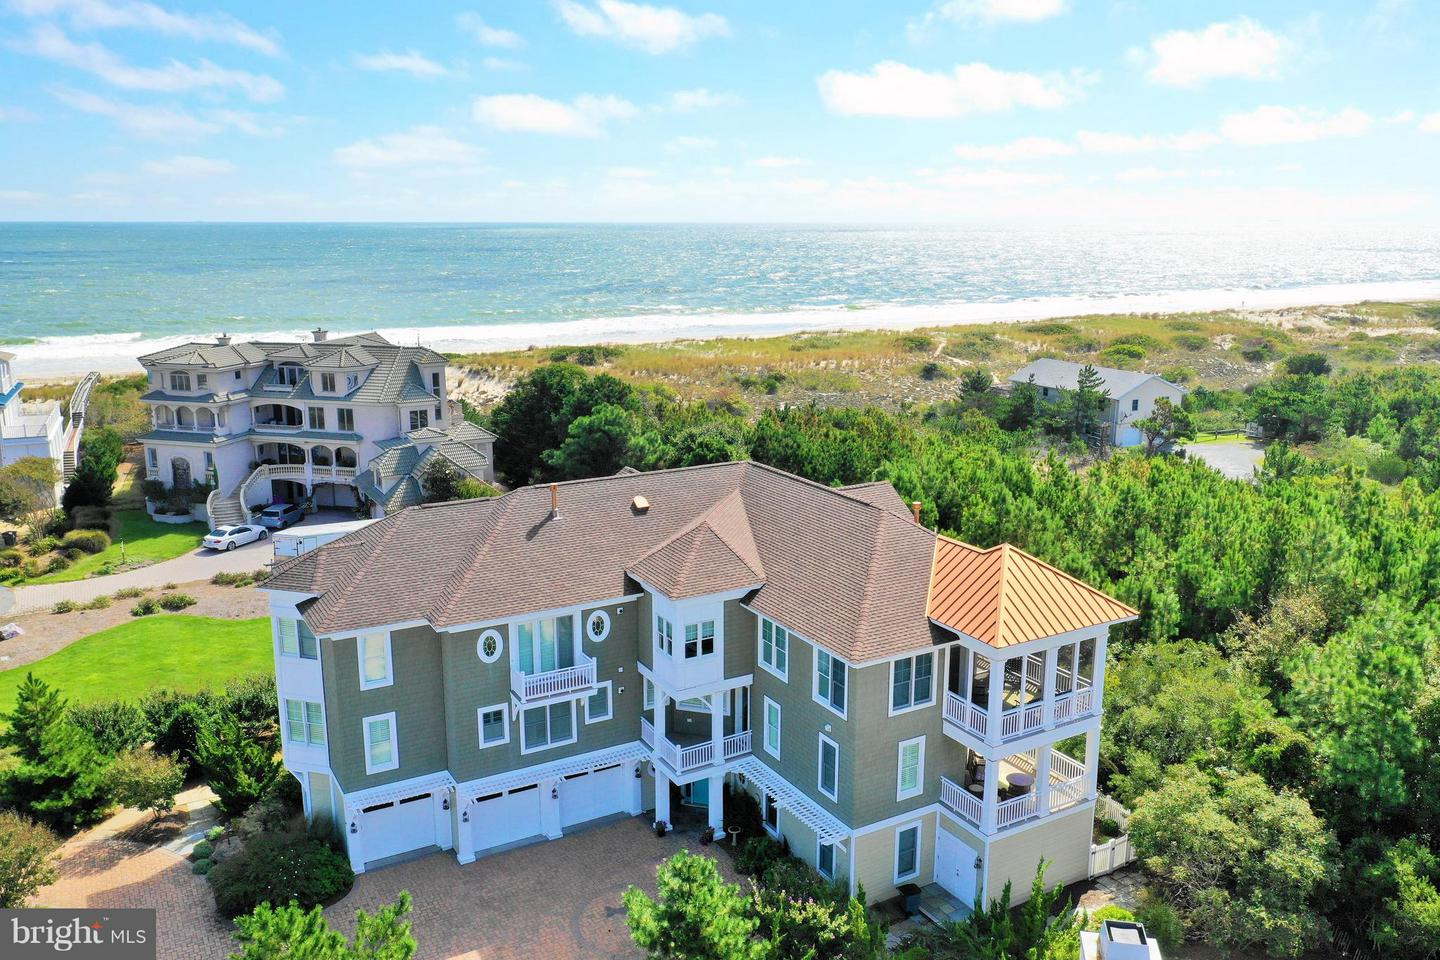 1002293530-300720130270-2018-09-25-15-08-25 31 Hall Ave | Rehoboth Beach, De Real Estate For Sale | MLS# 1002293530  - Suzanne Macnab